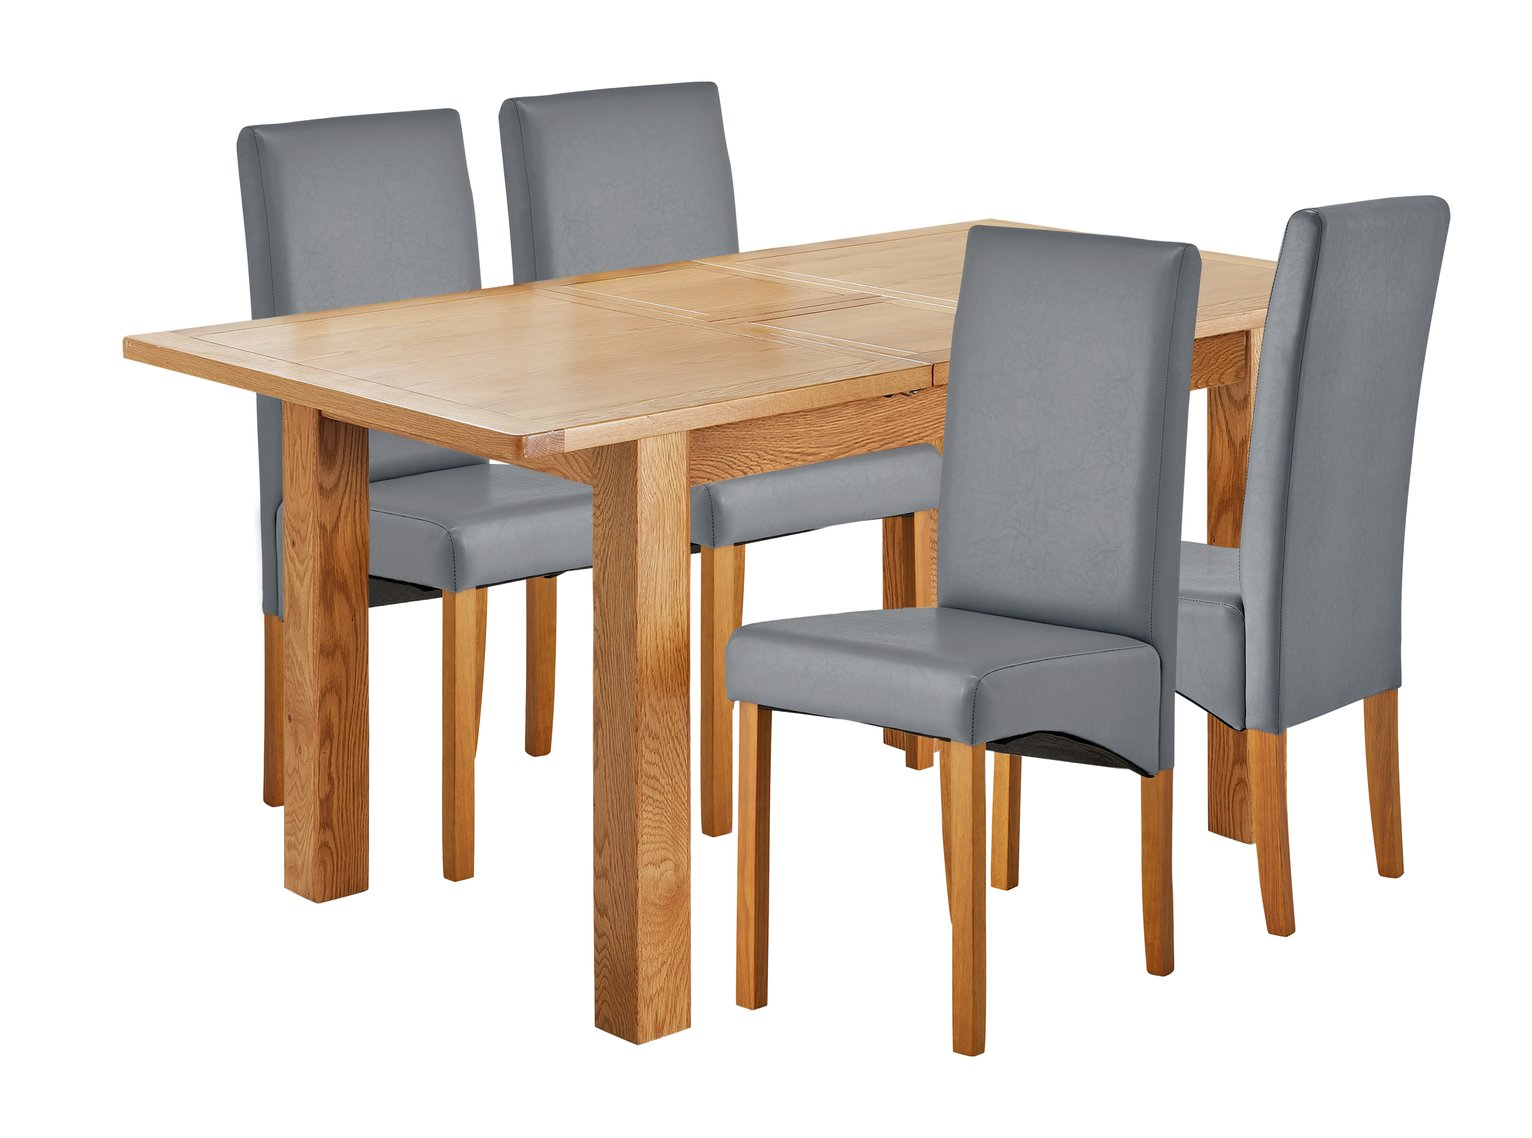 Image of Collection Ashwell Extendable Table & 4 Chairs - Grey